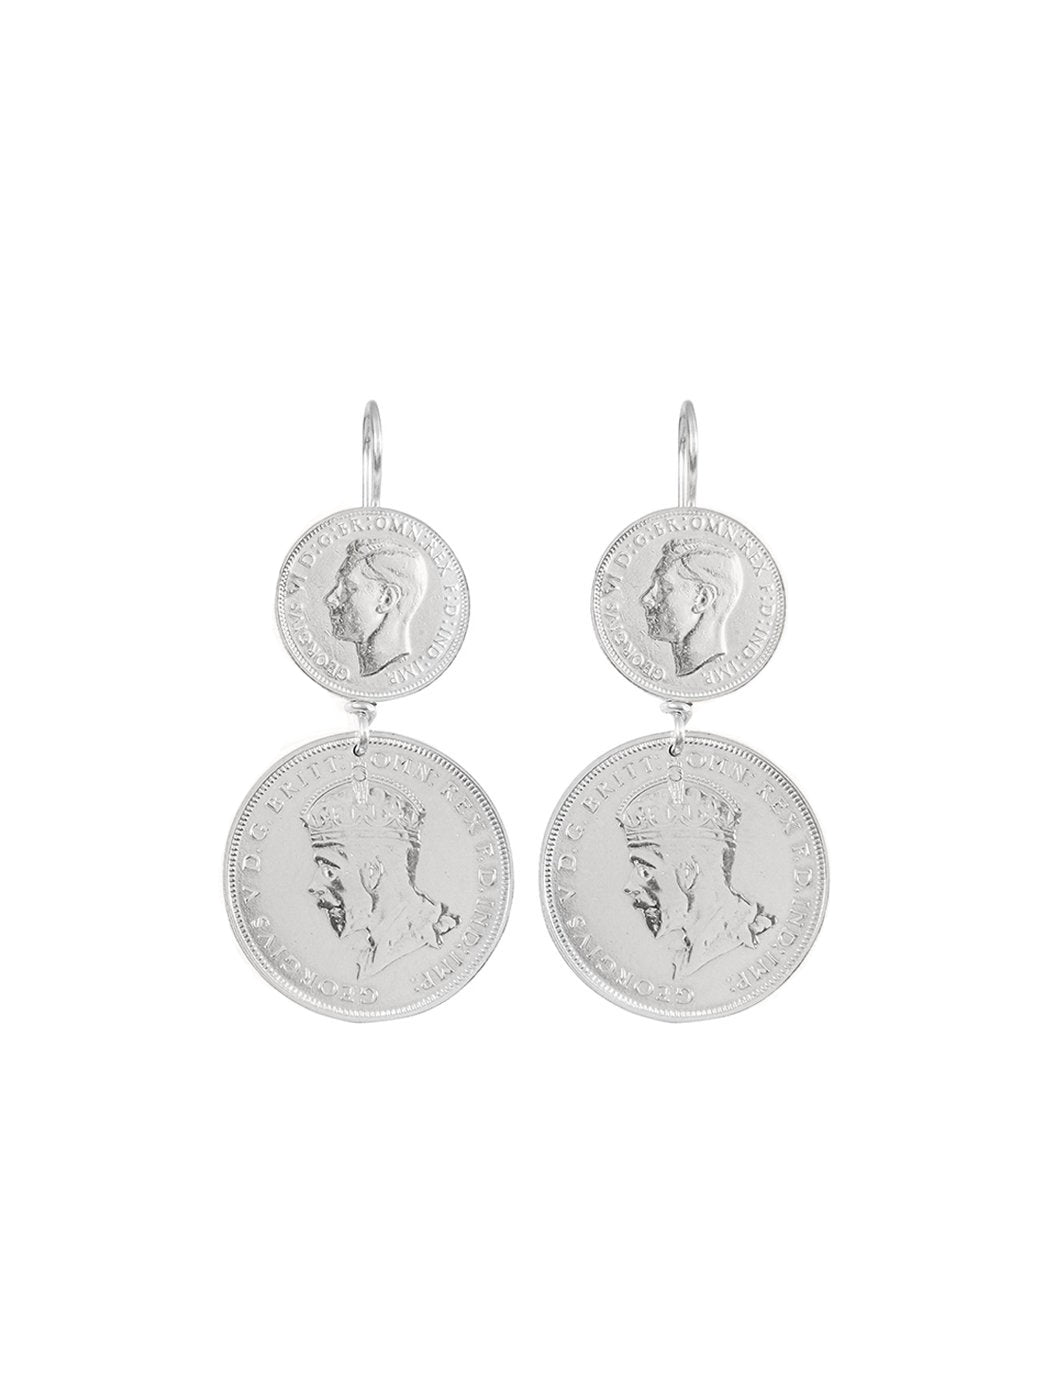 Fiorina Jewellery Double Coin Earrings